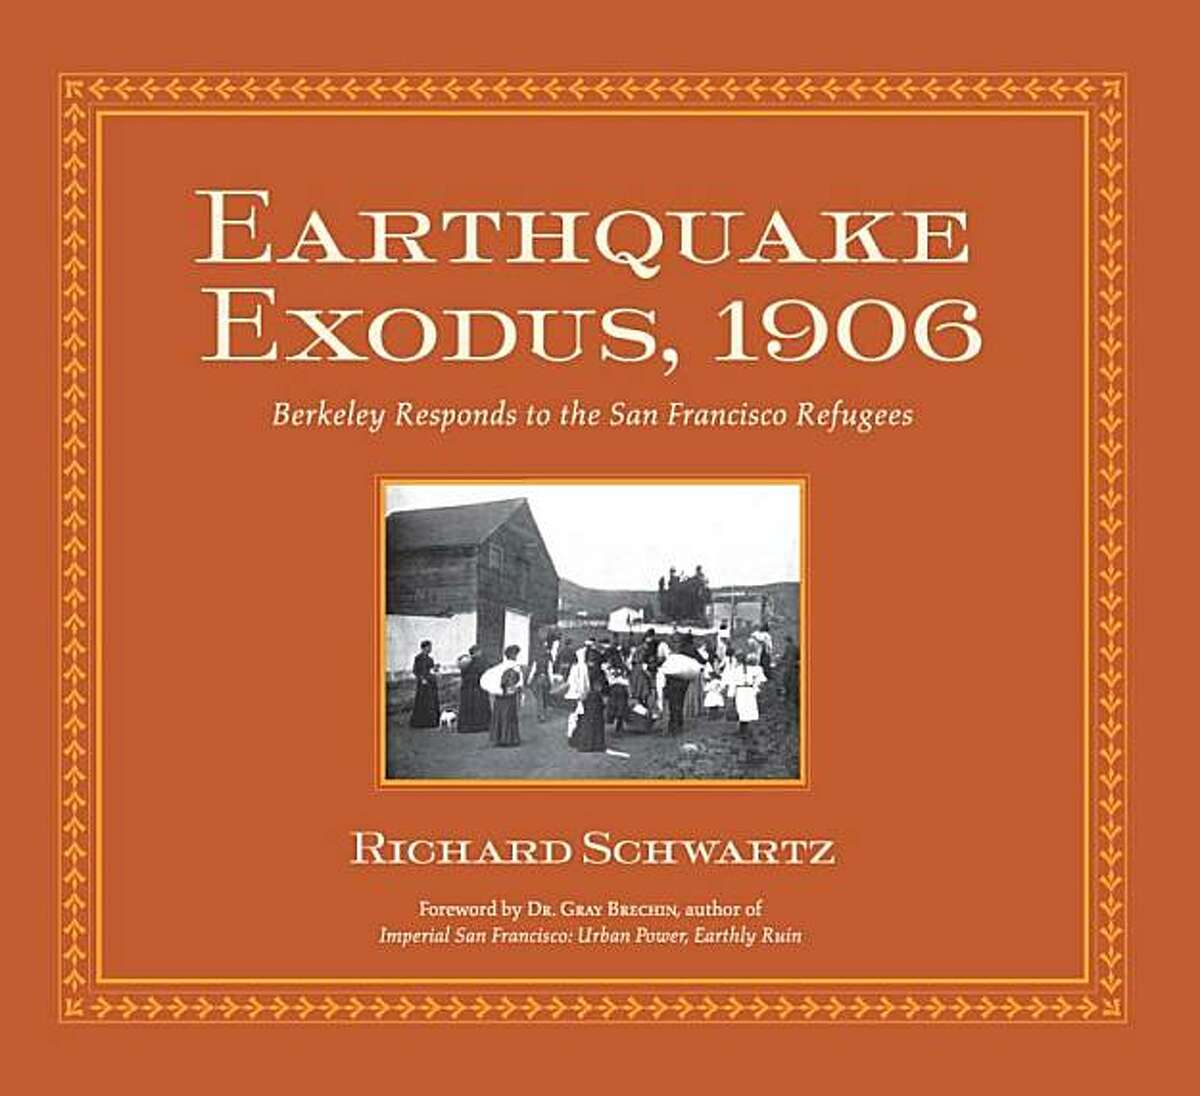 Schwartz?•s book, Earthquake Exodus 1906, Berkeley Responds to the San Francisco Refugees deals with the story of aftermath of the 1906 Earthquake, how the refugees fled the fire and destruction, what they witnessed as they fled, what means they used to get to safety, and what efforts were mobilized for their survival by East Bay residents who volunteered so much. Many of the stories in this book were largely lost or forgotten for one hundred years. The ten-week relief effort in the East Bay to assist the San Francisco refugees was so successful, it lasted only ten weeks, everyone either returning home, being relocated and being offered new jobs. The common sense idea that the real purpose of the relief effort was to, as quickly as possible, put the refugees back on their own two feet and occupy them with work. It was extraordinarily successful. From the book